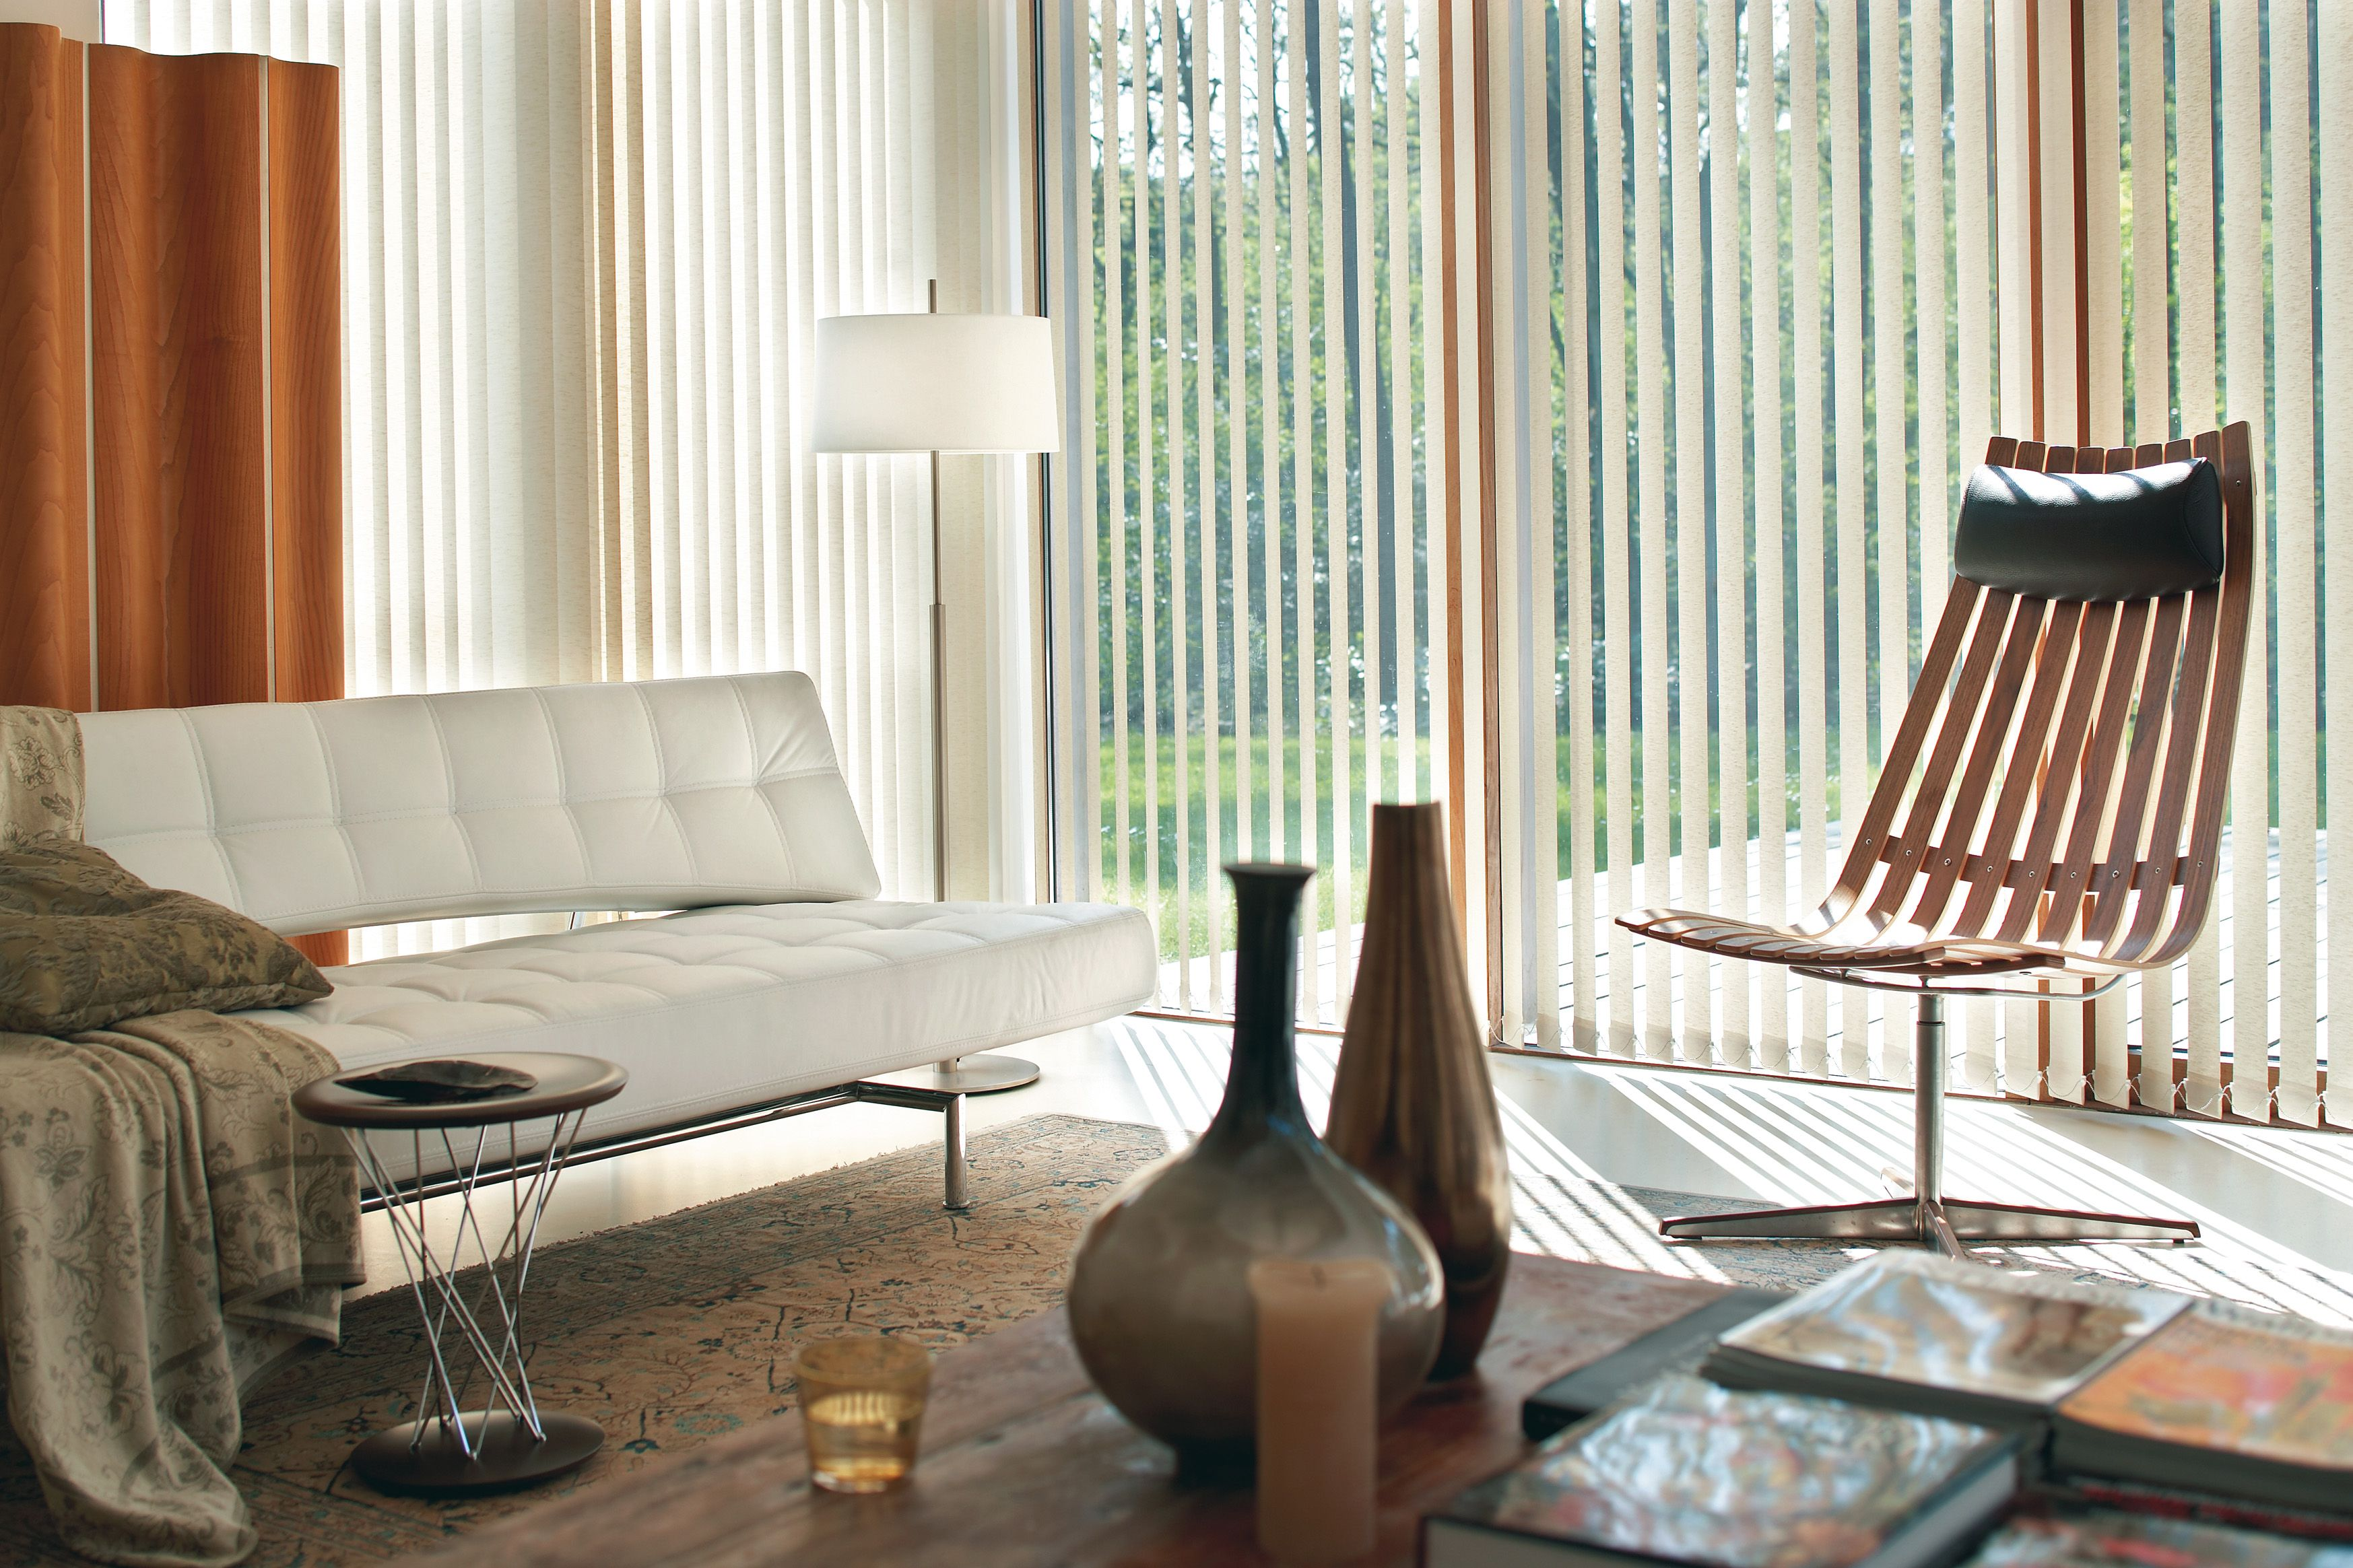 Mid century modern window shades - Luxaflex Vertical Blinds Elegant Simplicity For Larger Windows Perfect For Mid Century Modern Living